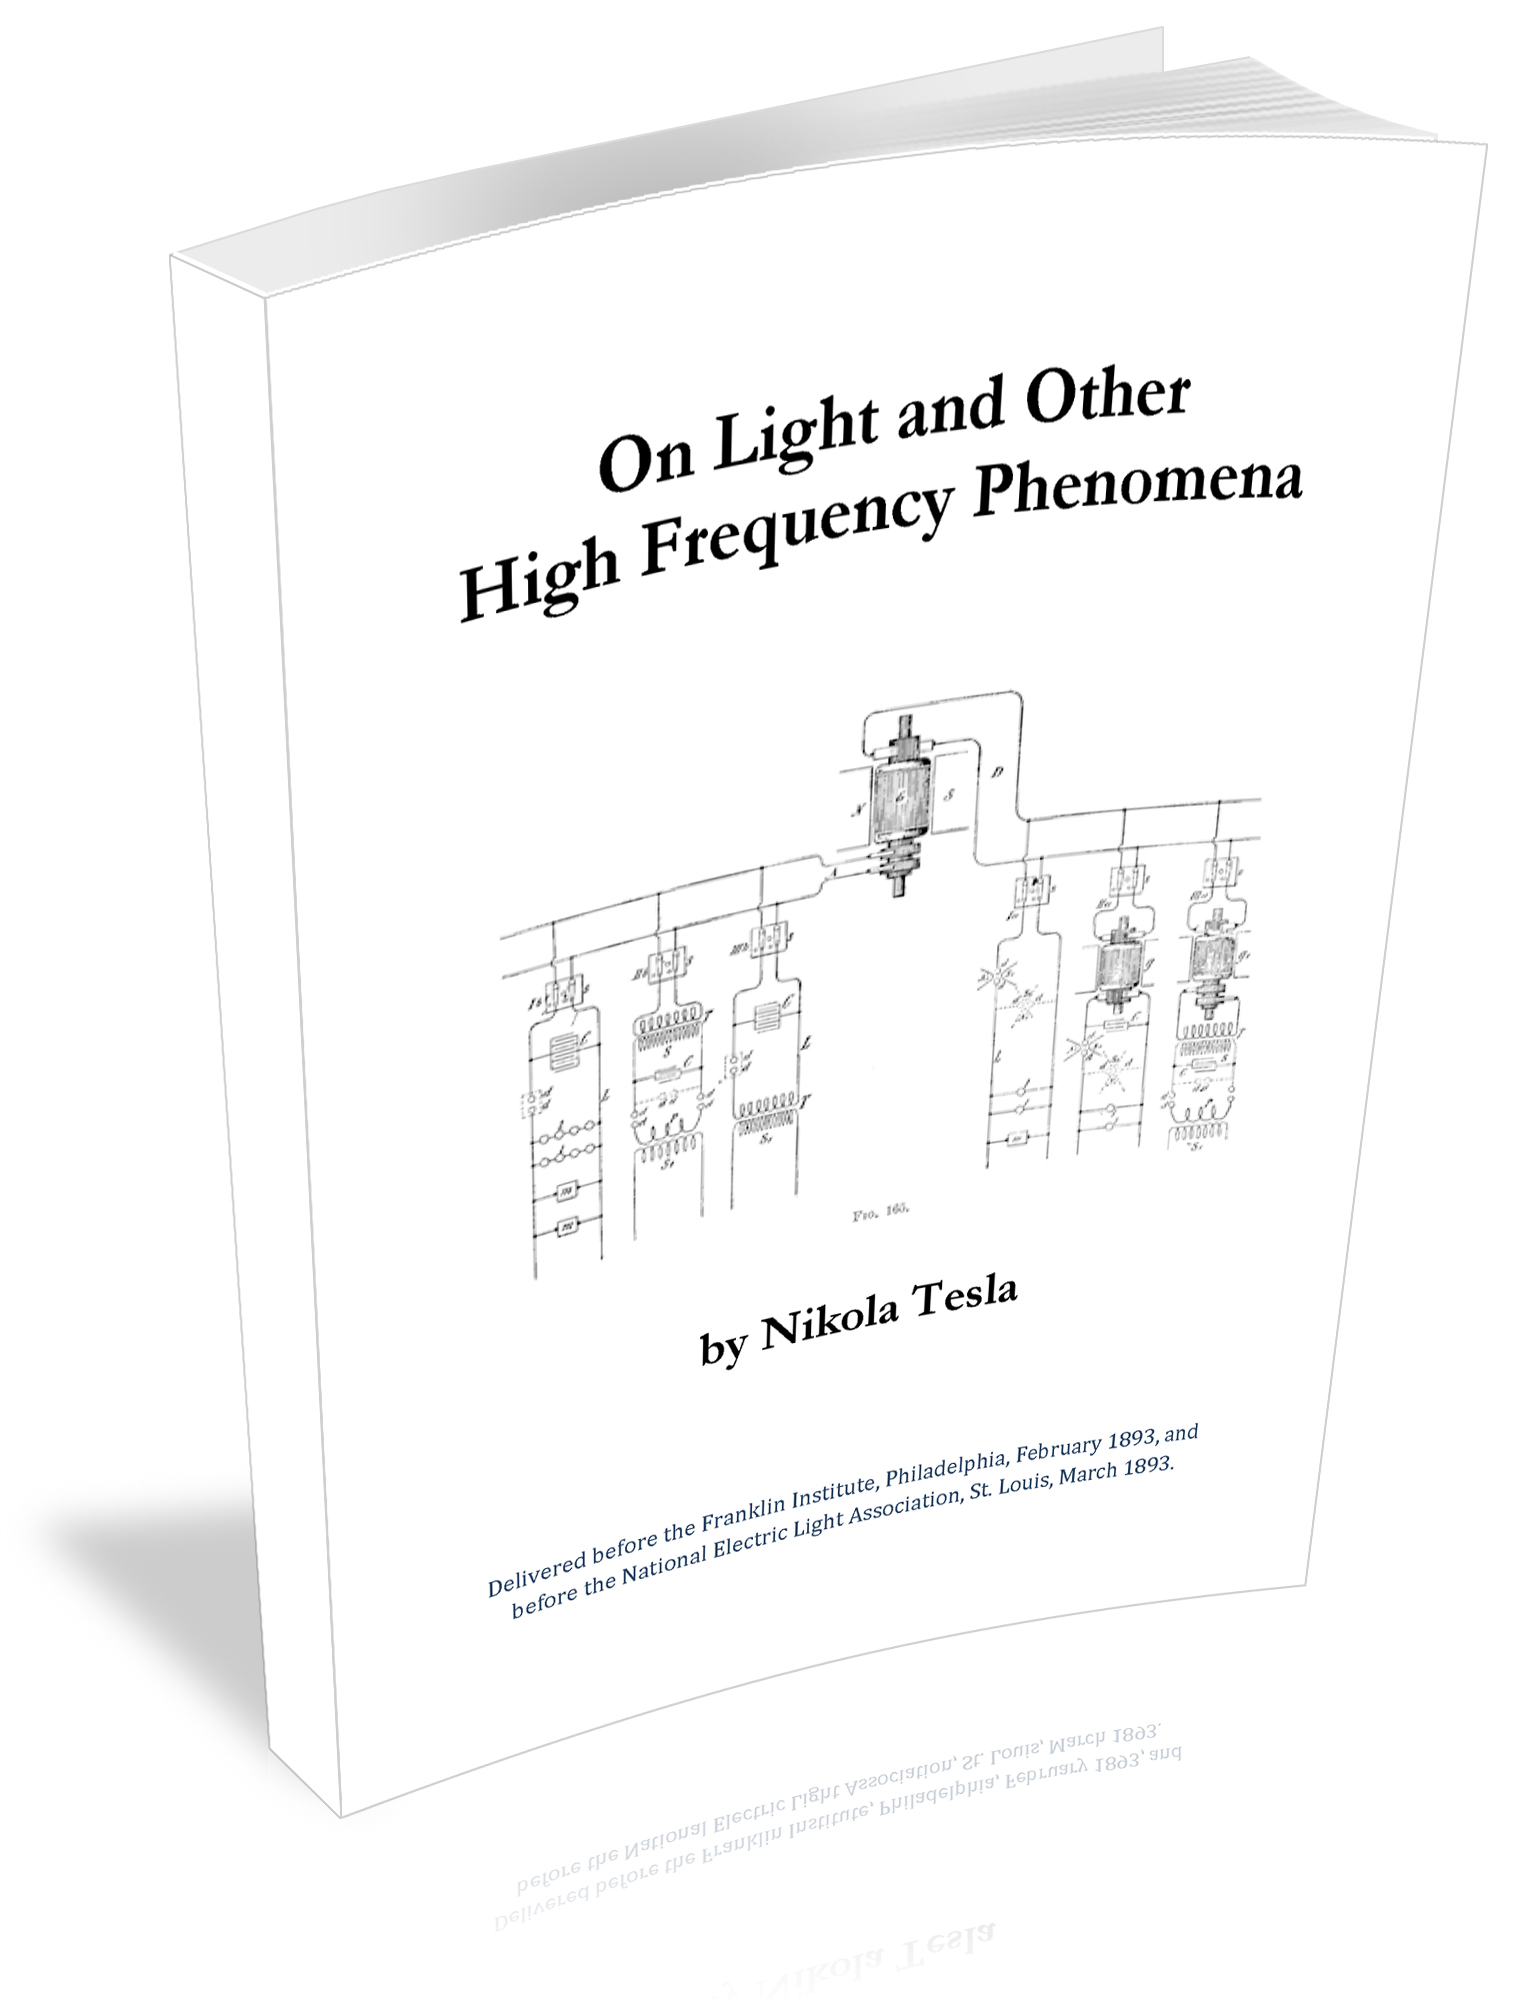 On Light and Other High Frequency Phenomena by Nikola